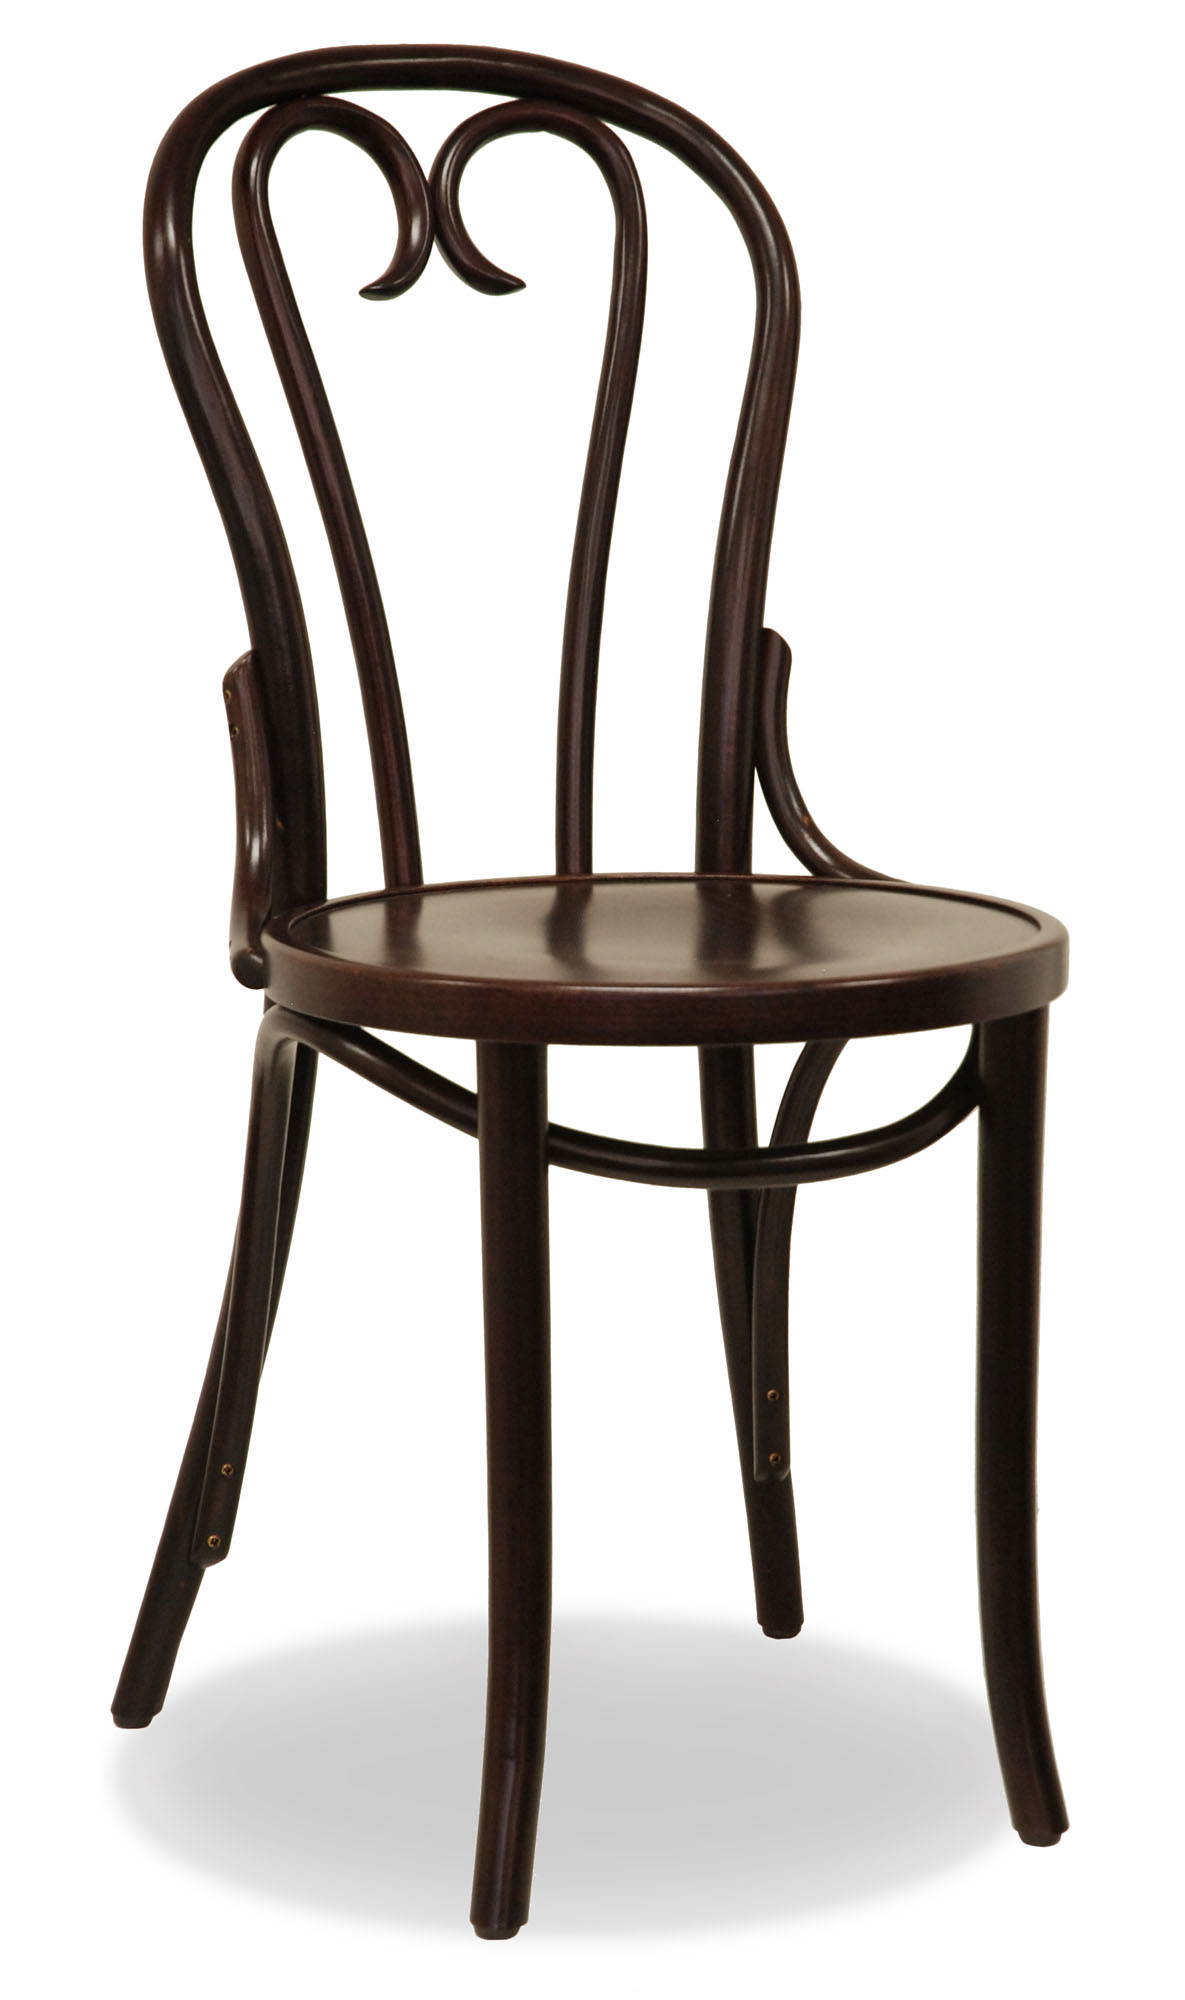 Bon Uno EstClassic Bentwood Chairs Come In A Variety Of Styles ...